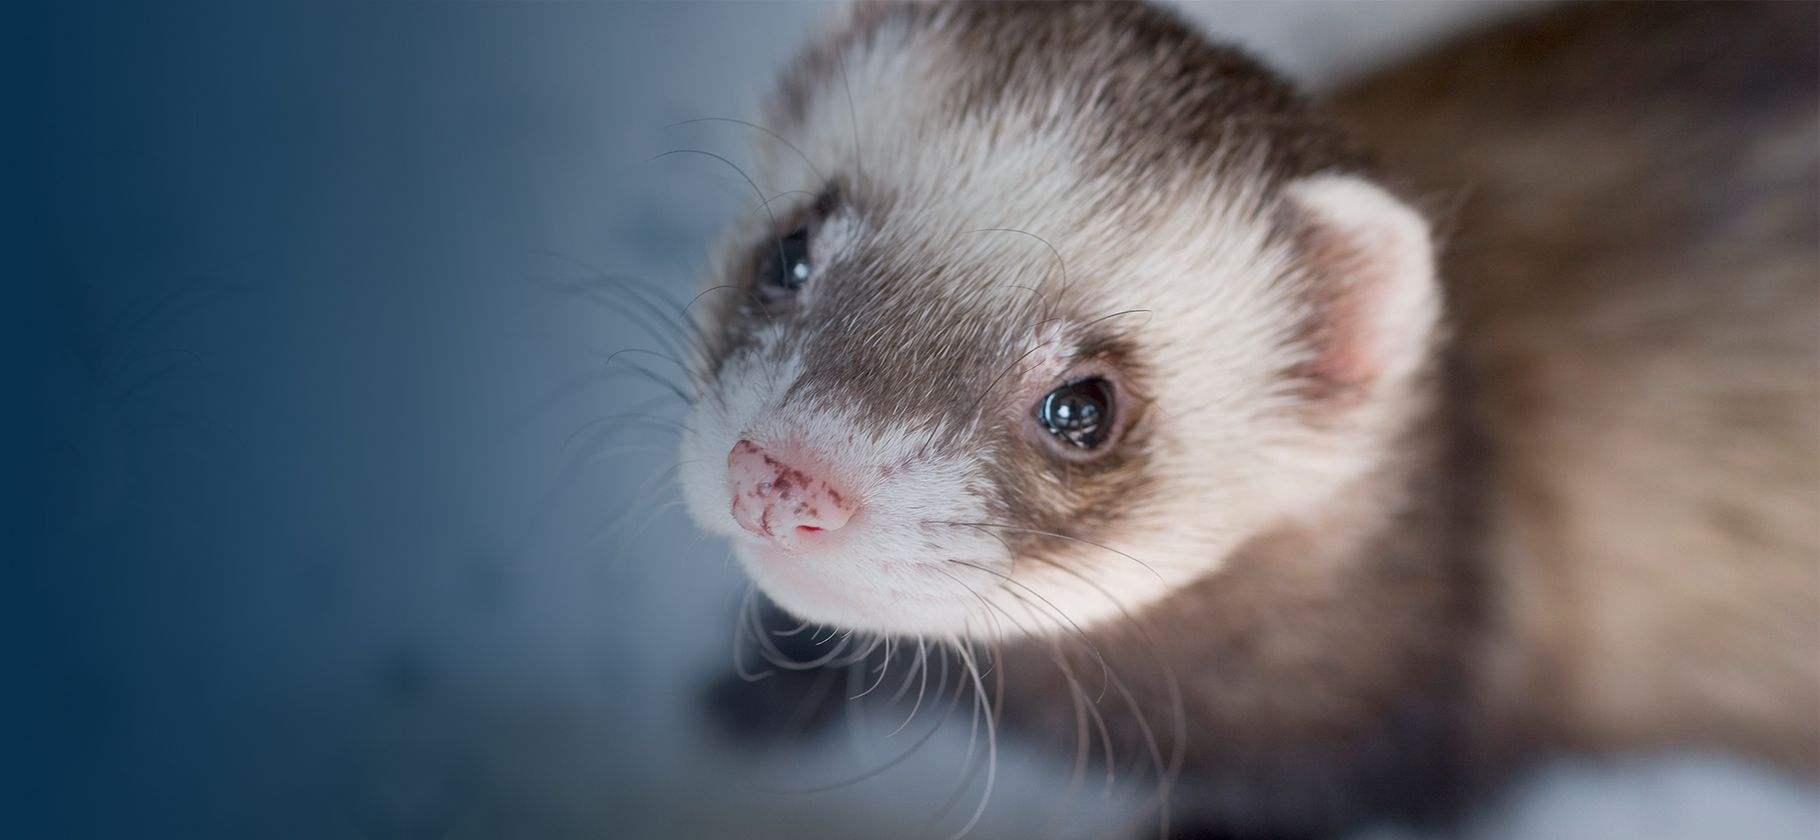 Ferrets and hamsters are receiving extra attention for their role in coronavirus research